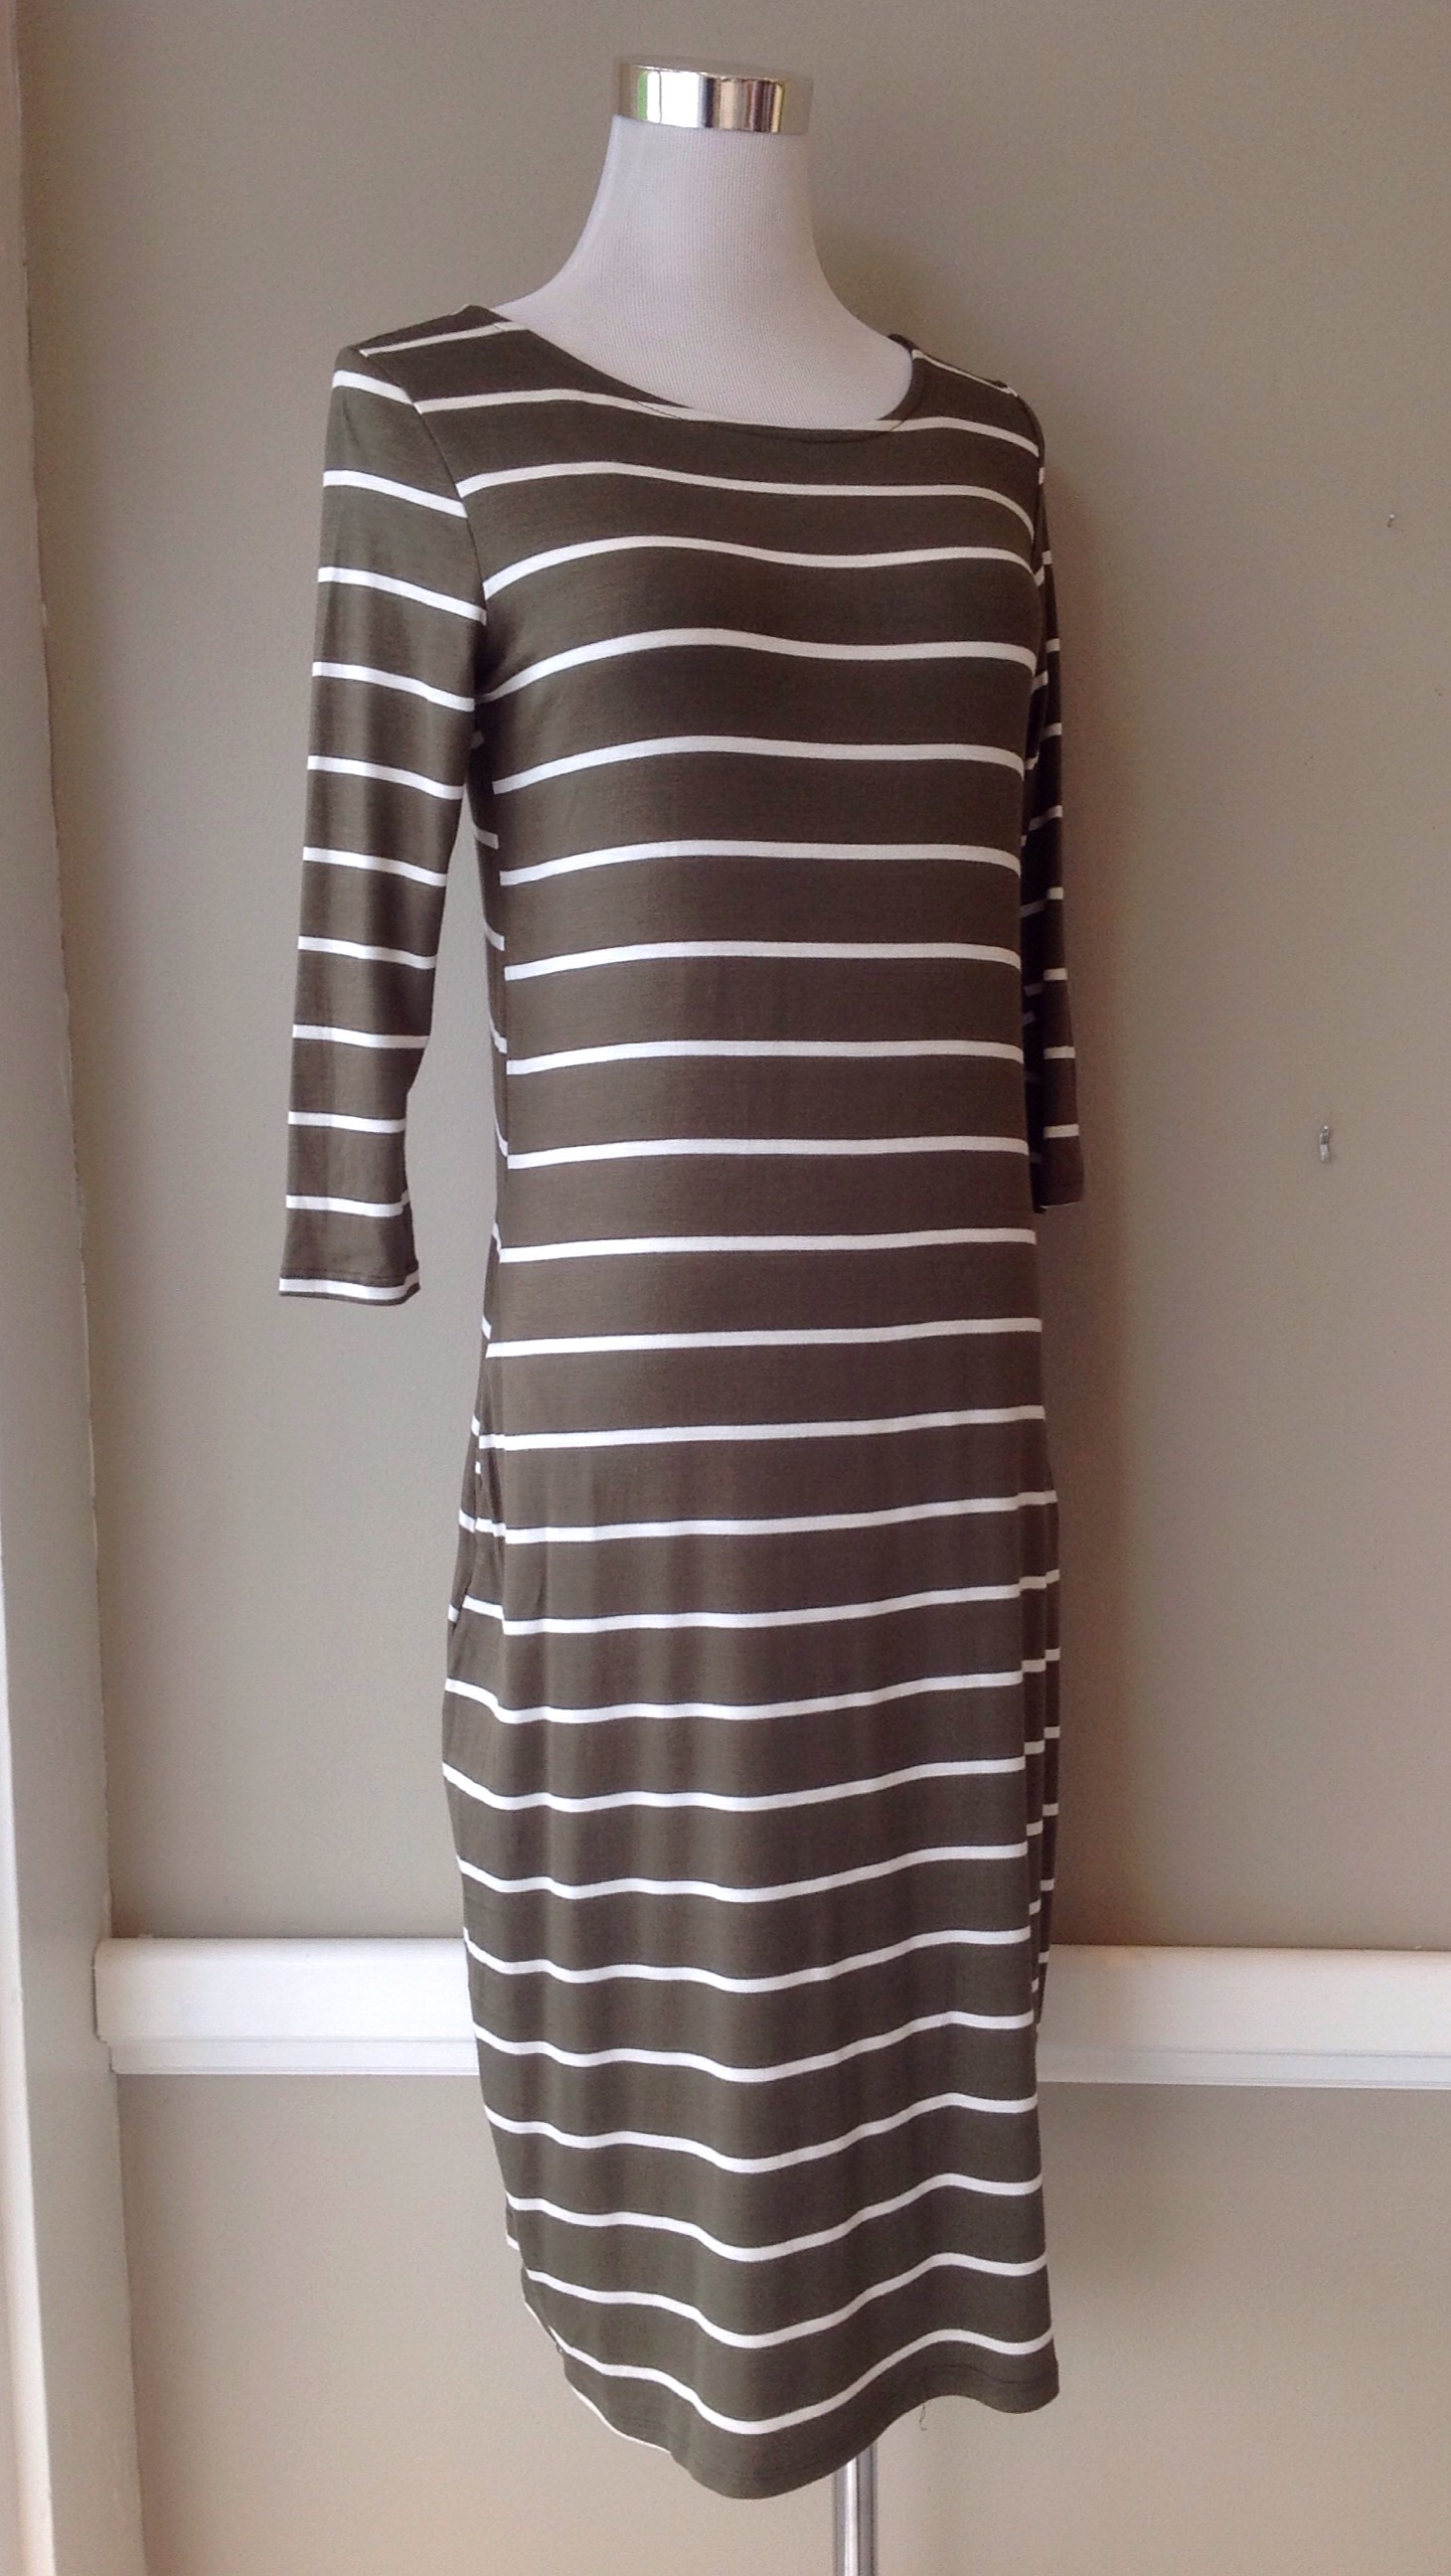 Olive and ivory jersey knit midi dress, $38